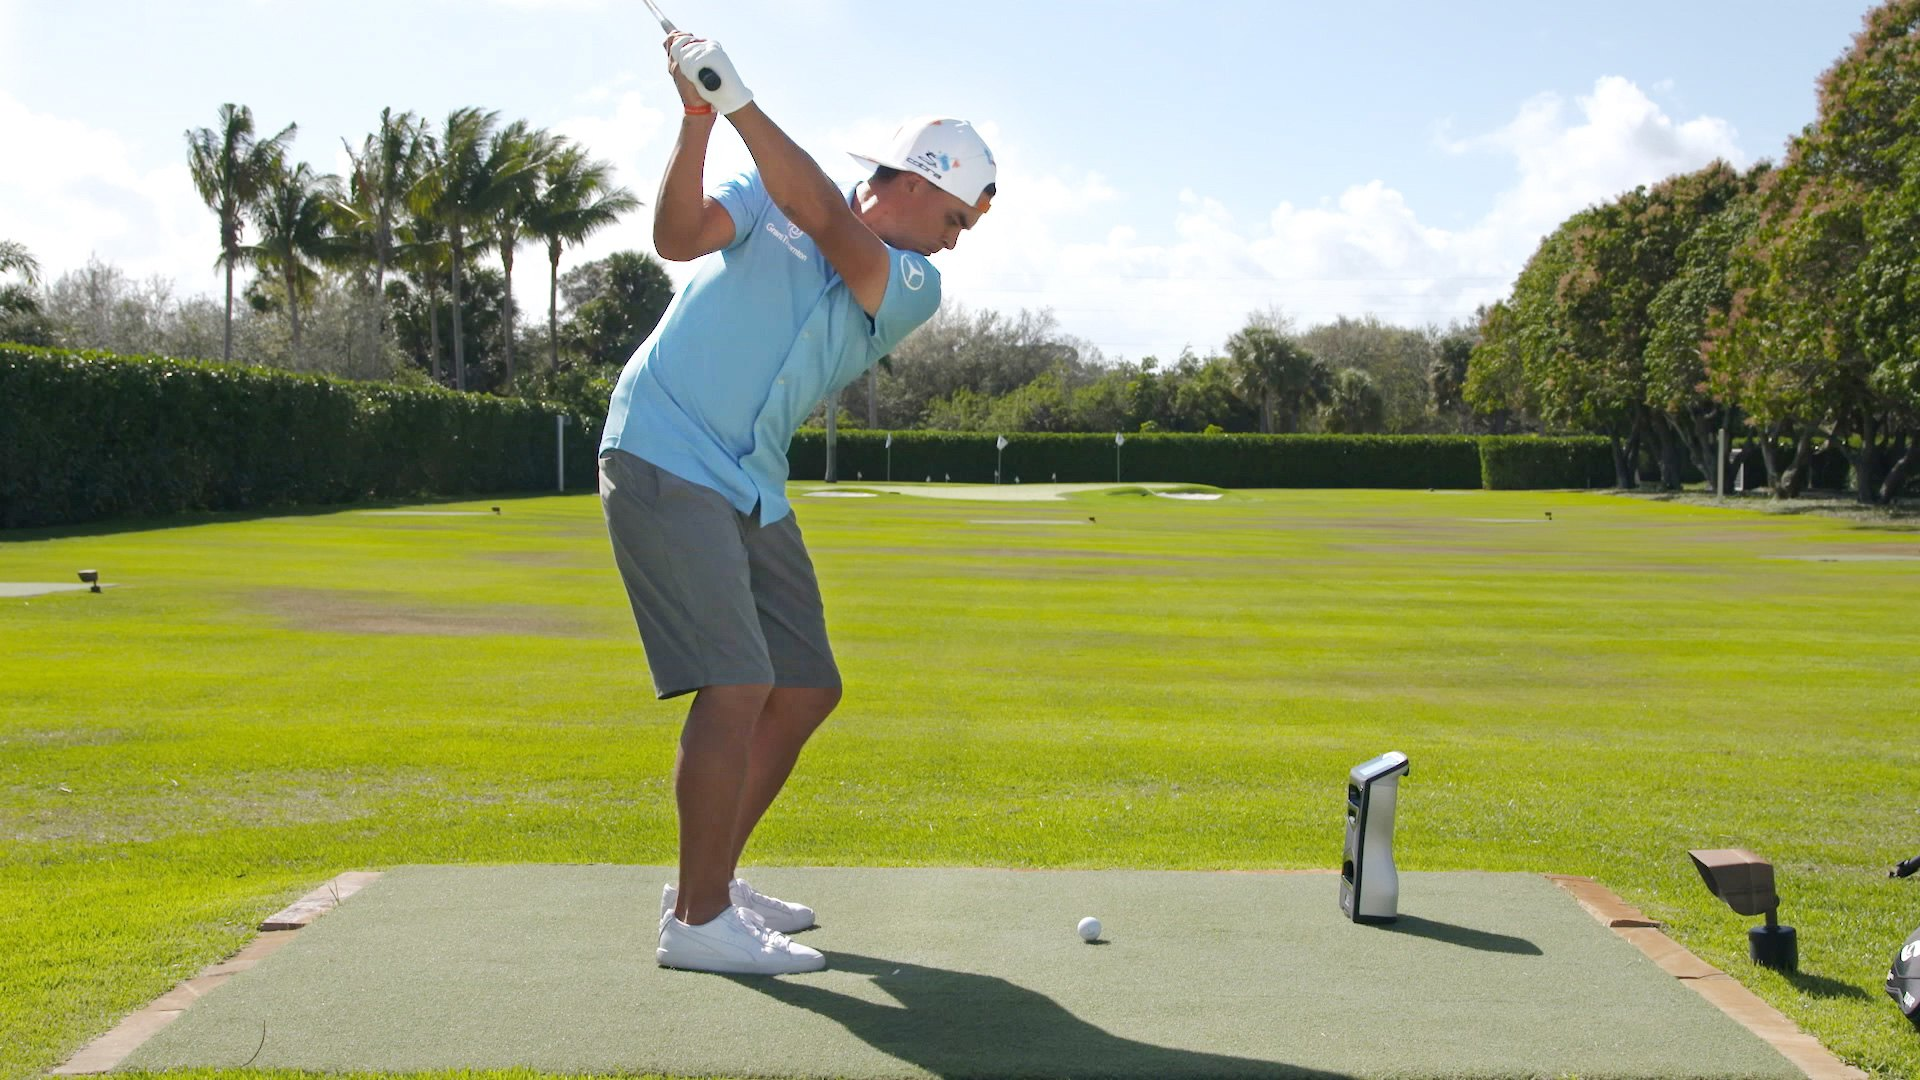 Rickie Fowler practicing at home with a GCQuad launch monitor.